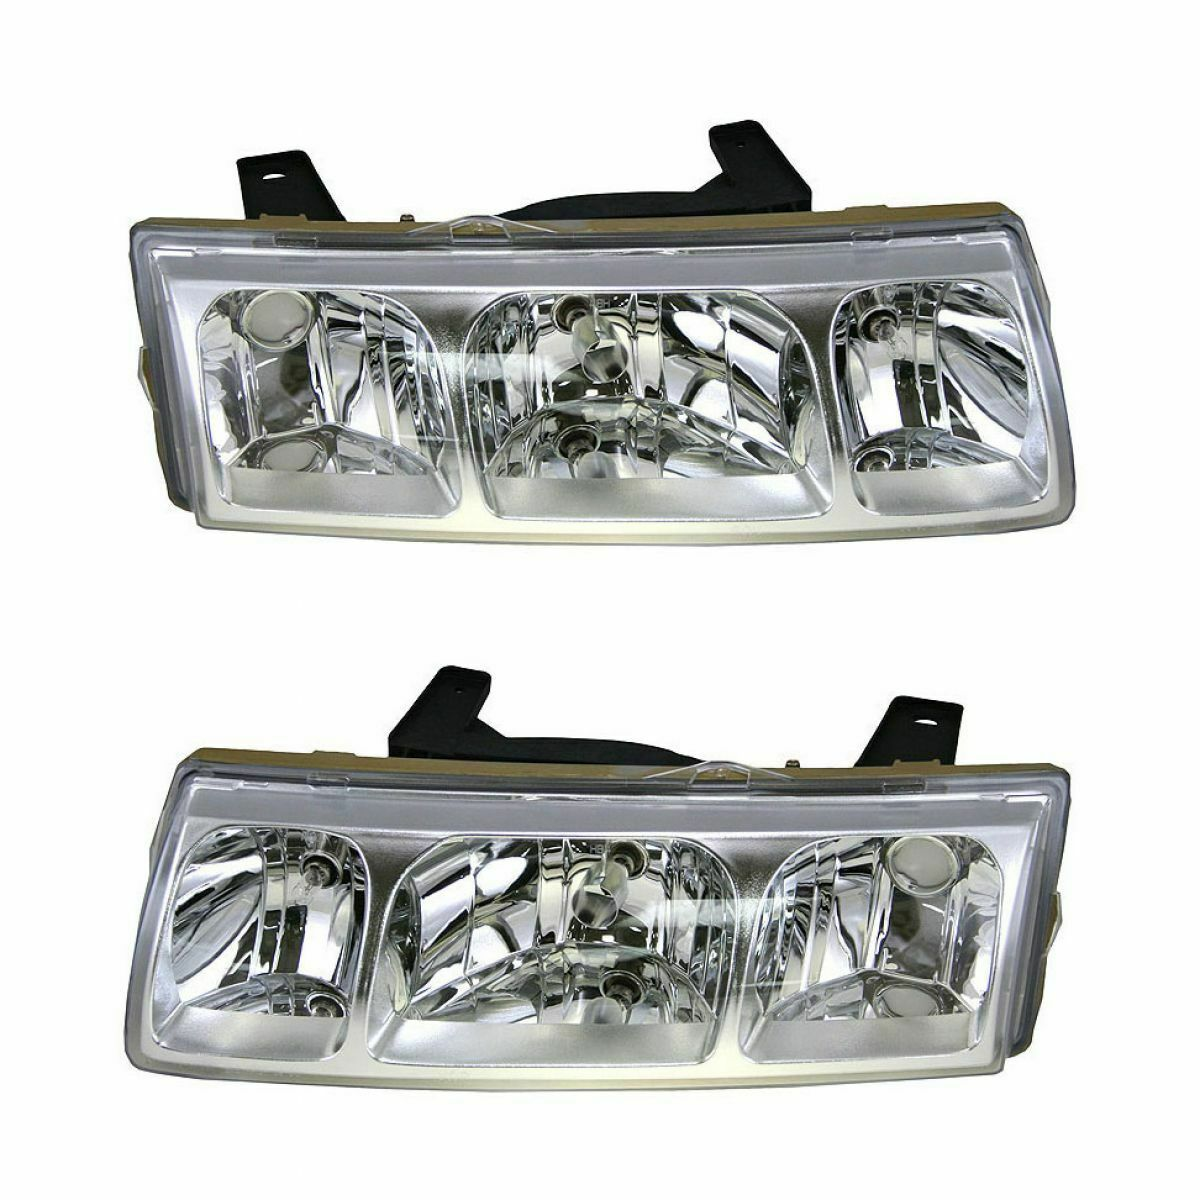 Front Headlights Headlamps Lights Left LH & Right RH Pair Set for 05 Saturn Vue